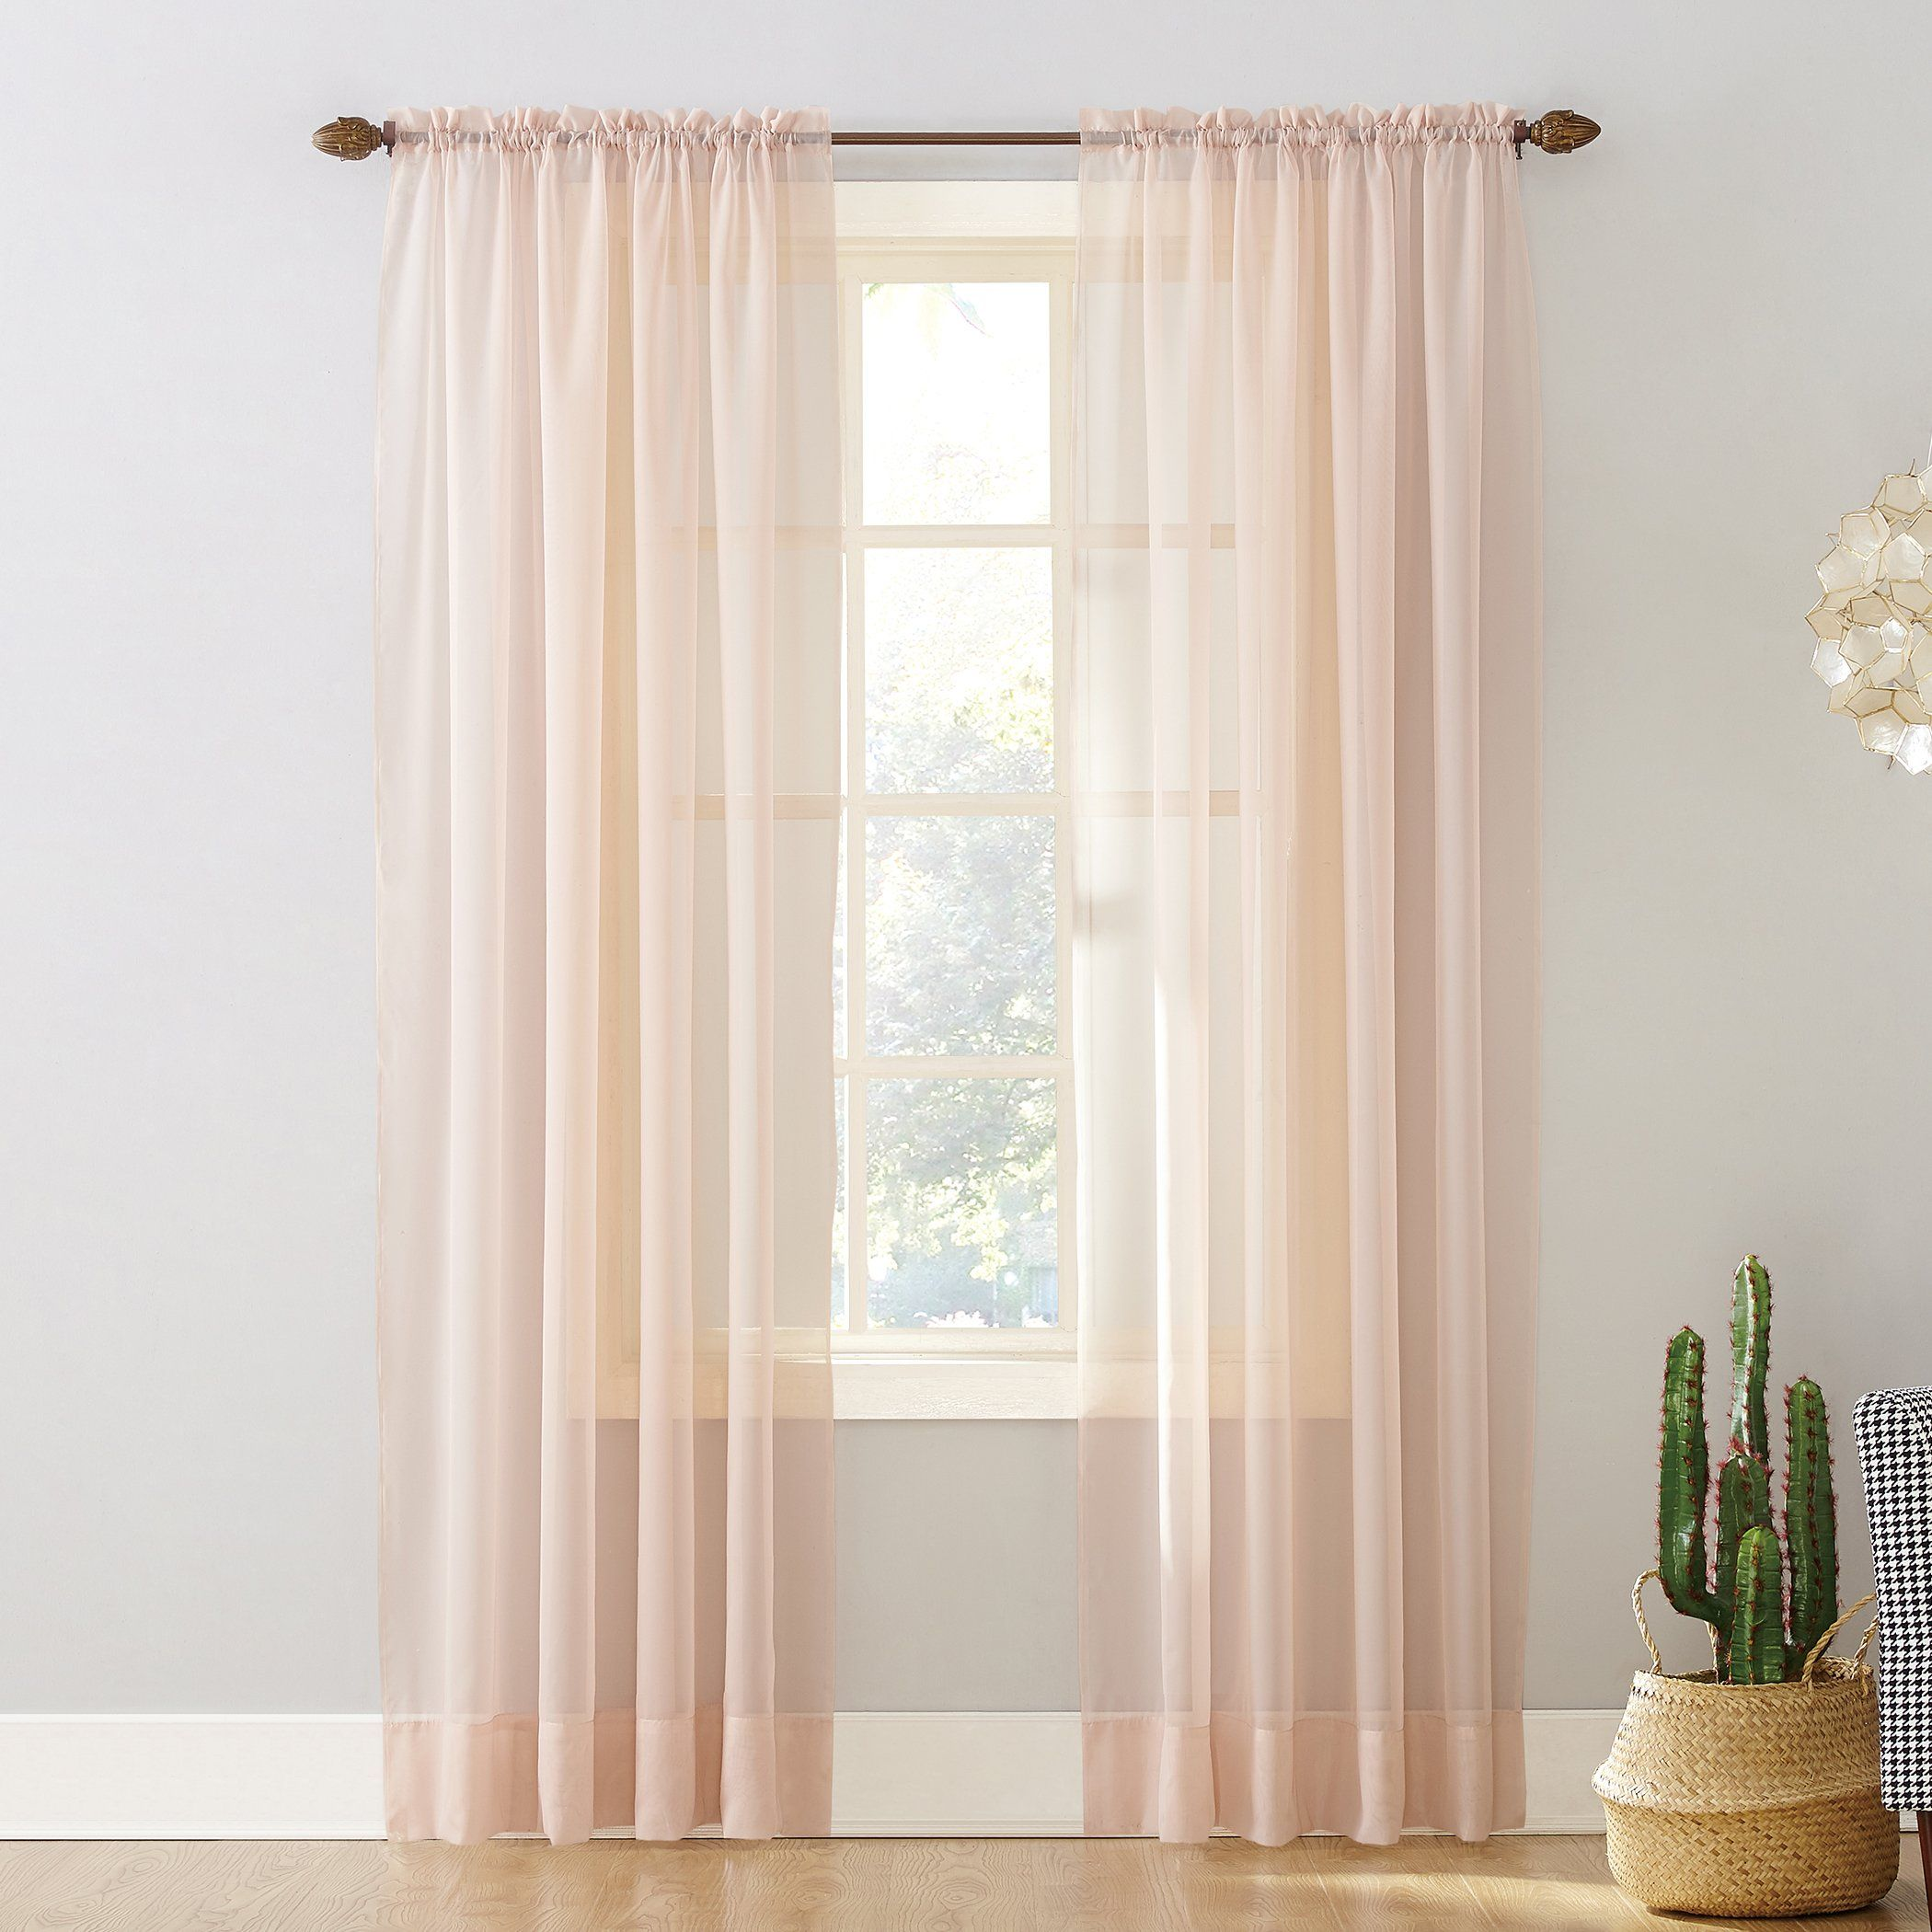 No 918 Emily Sheer Voile Rod Pocket Curtain Panel 59 Quot X